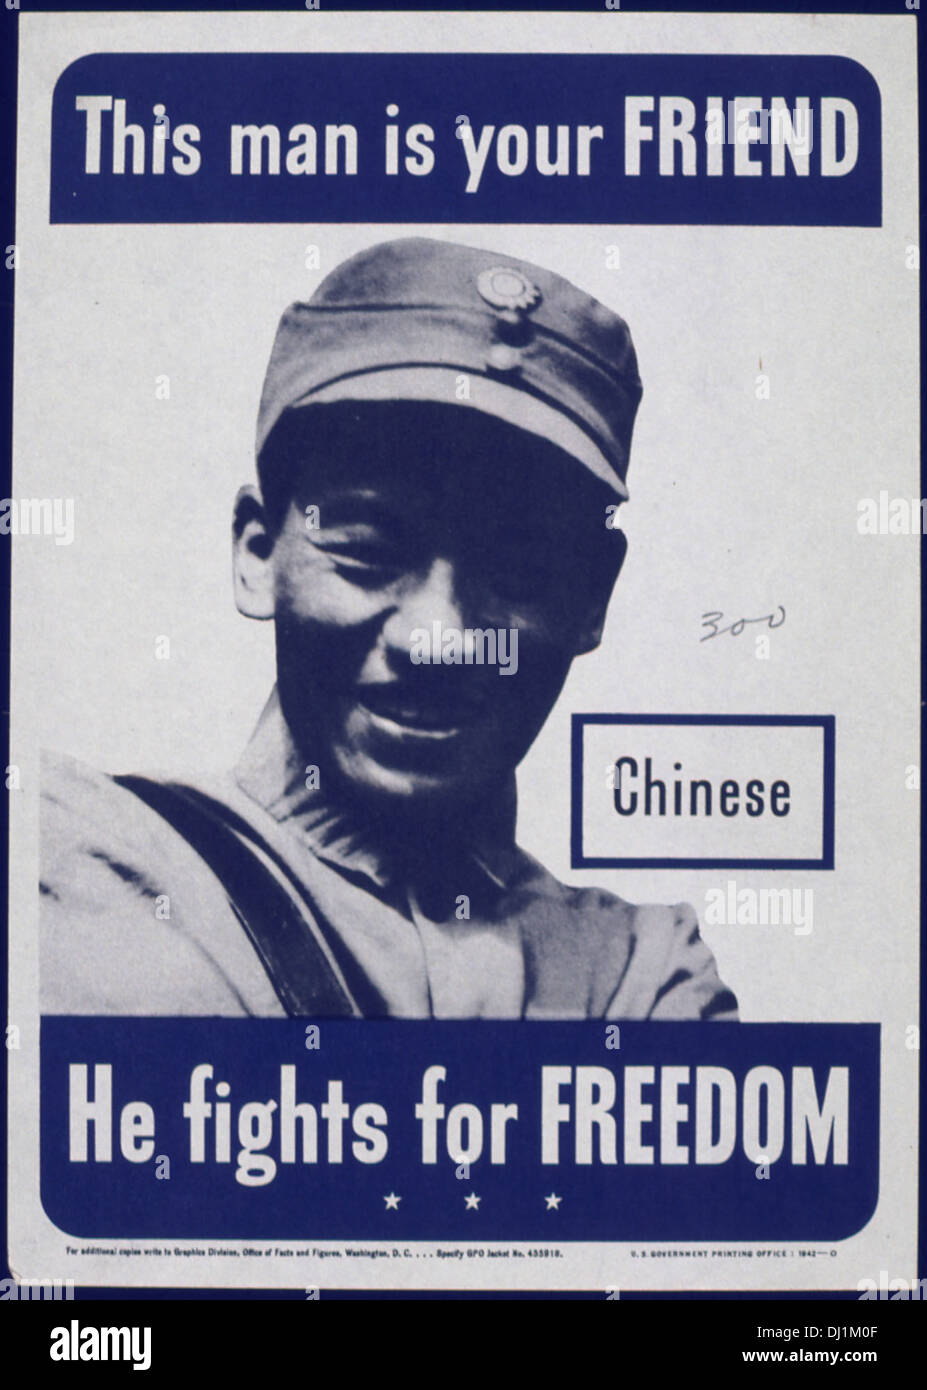 THIS MAN IS YOUR FRIEND. CHINESE. HE FIGHTS FOR FREEDOM 793 - Stock Image